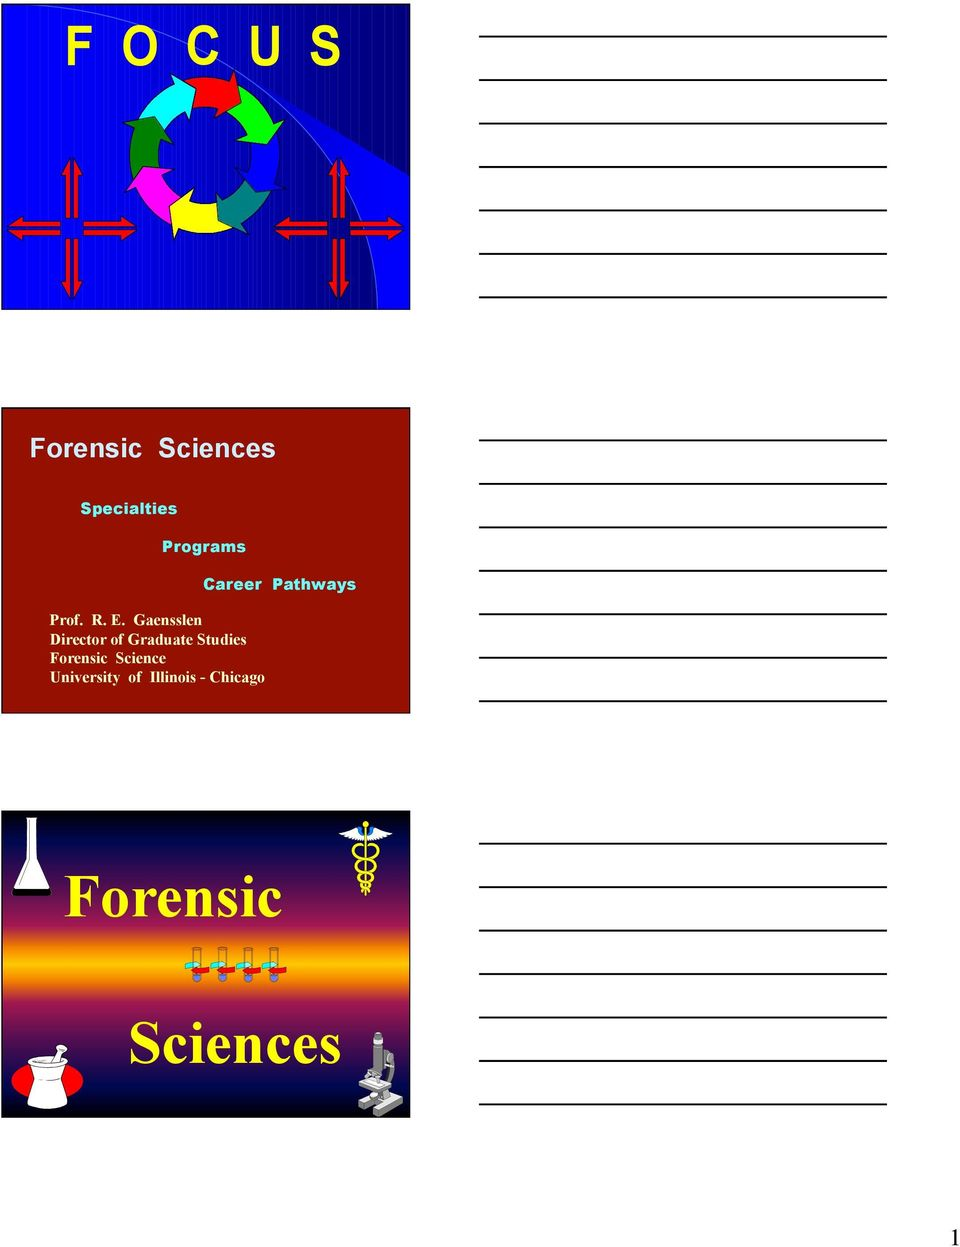 Studies Forensic Science University of